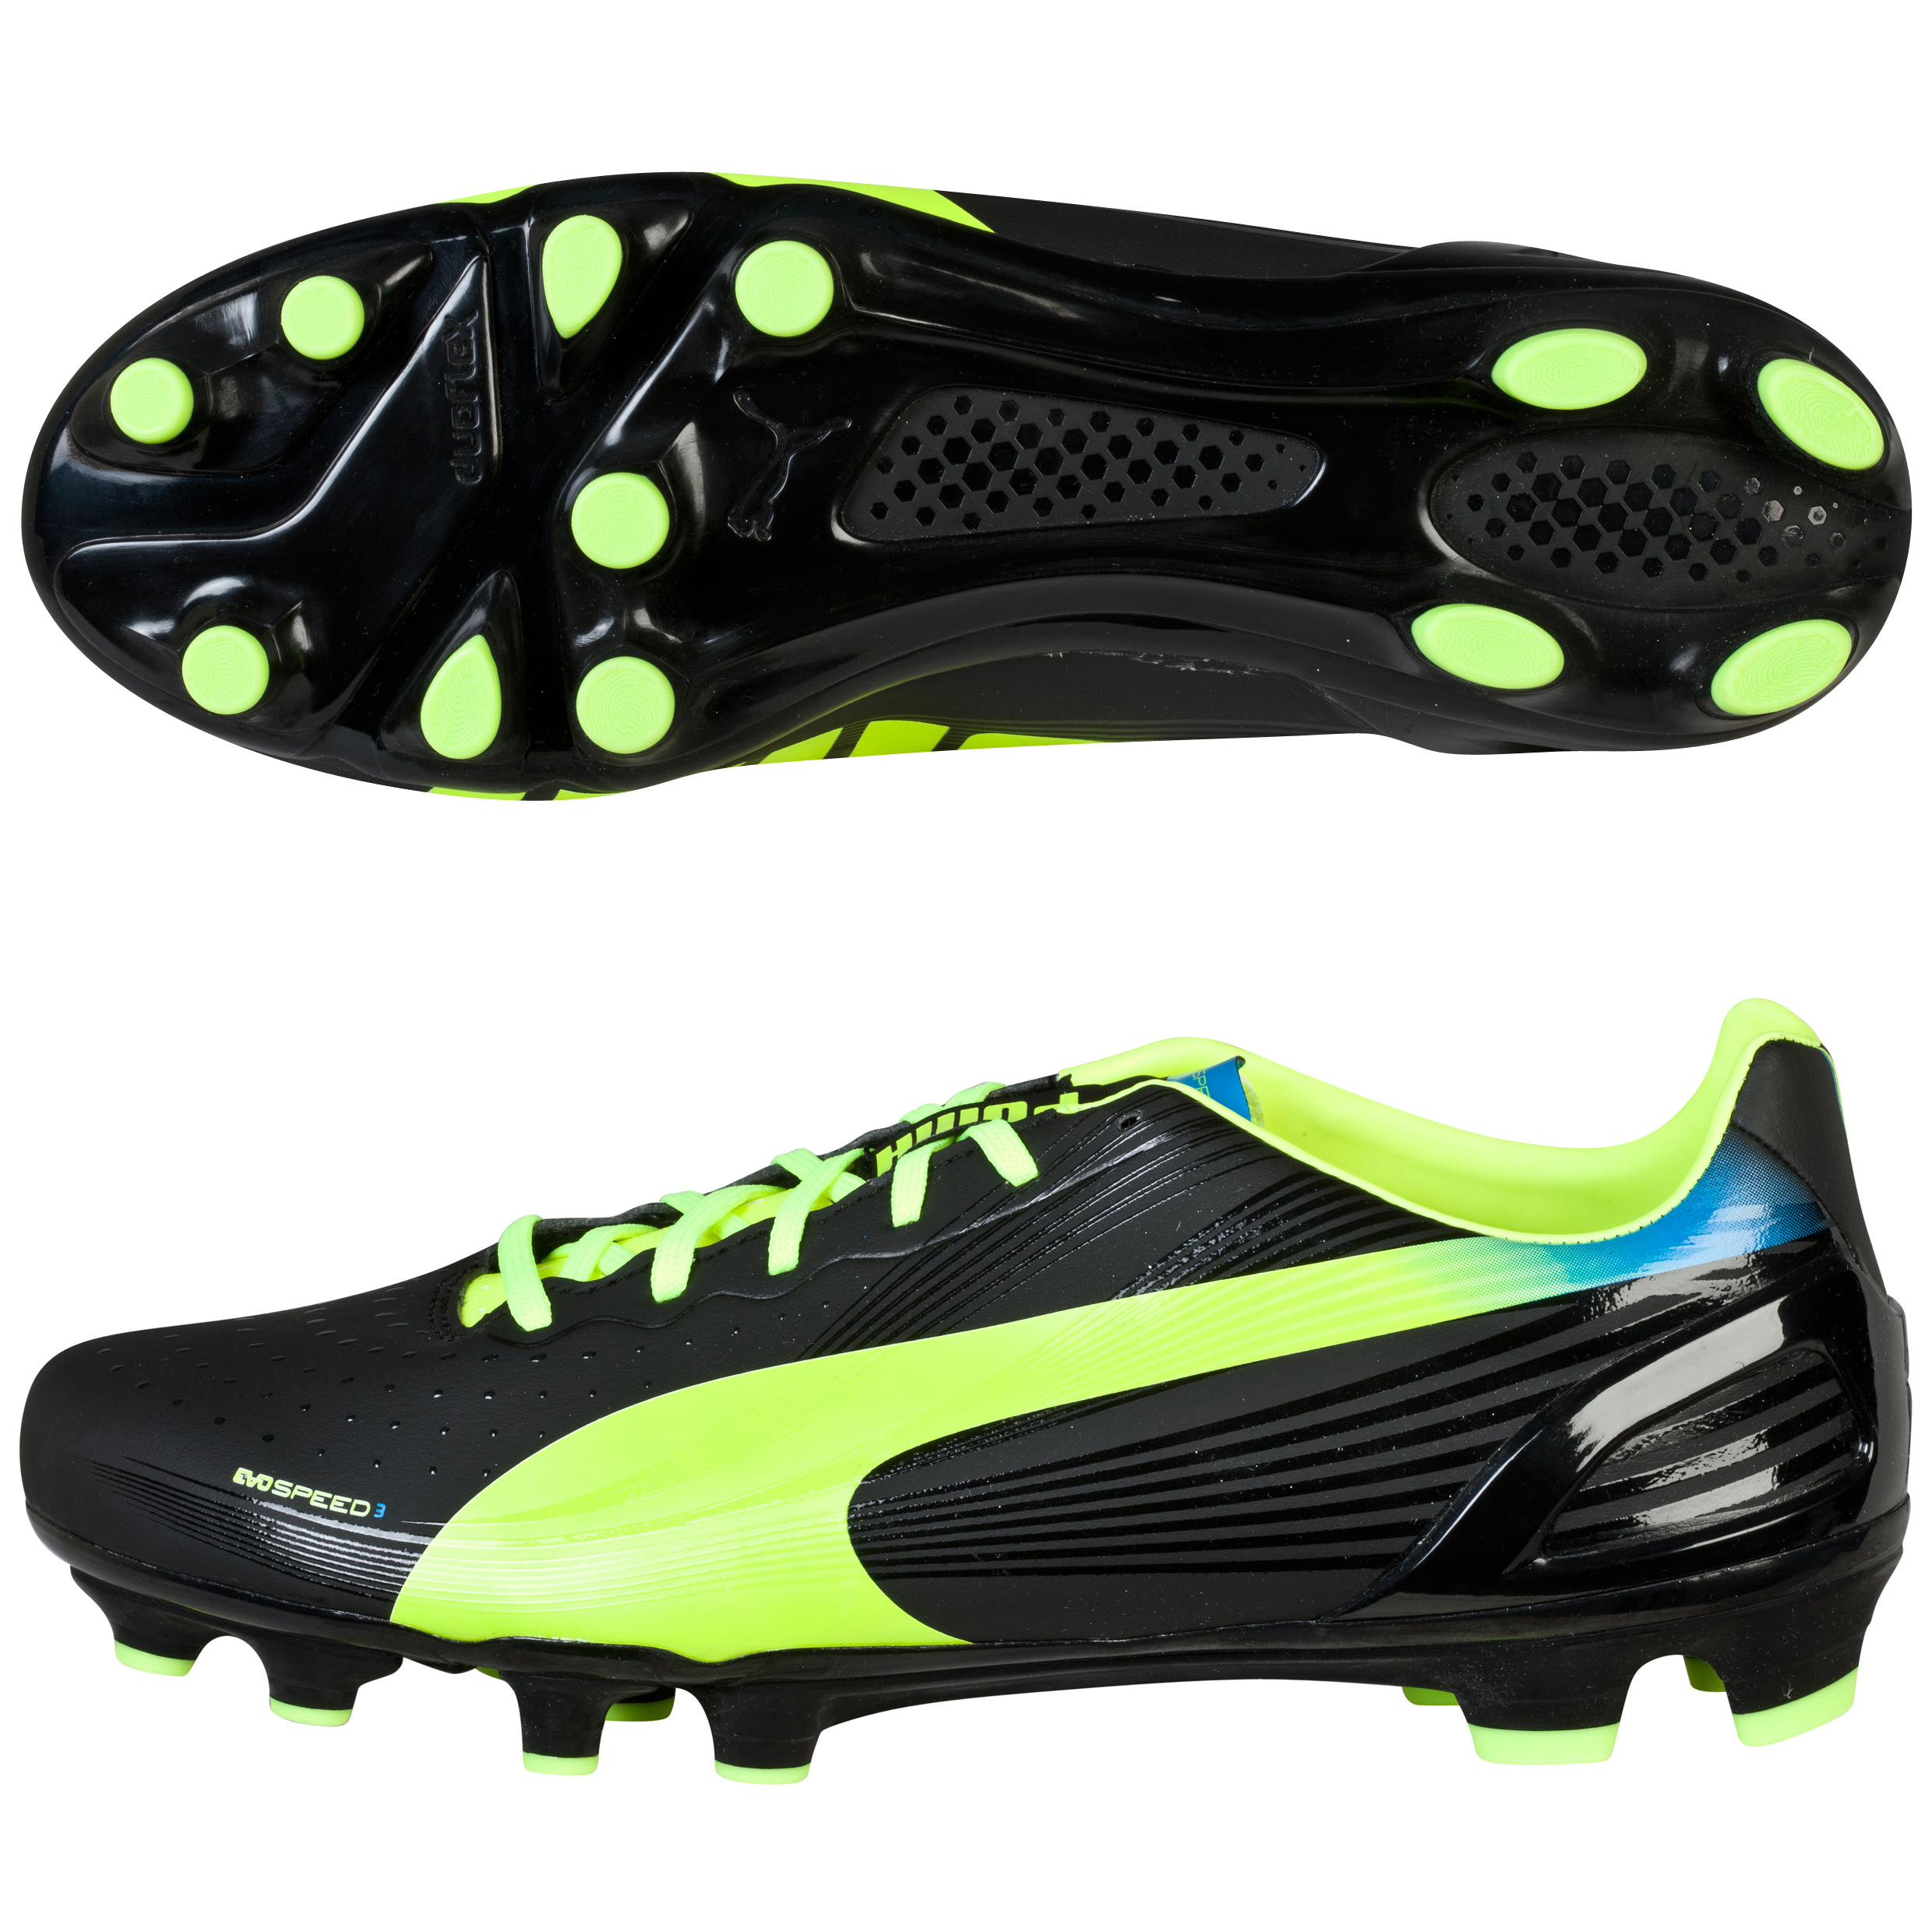 Puma evoSPEED 3.2 Firm Ground Football Boots Black